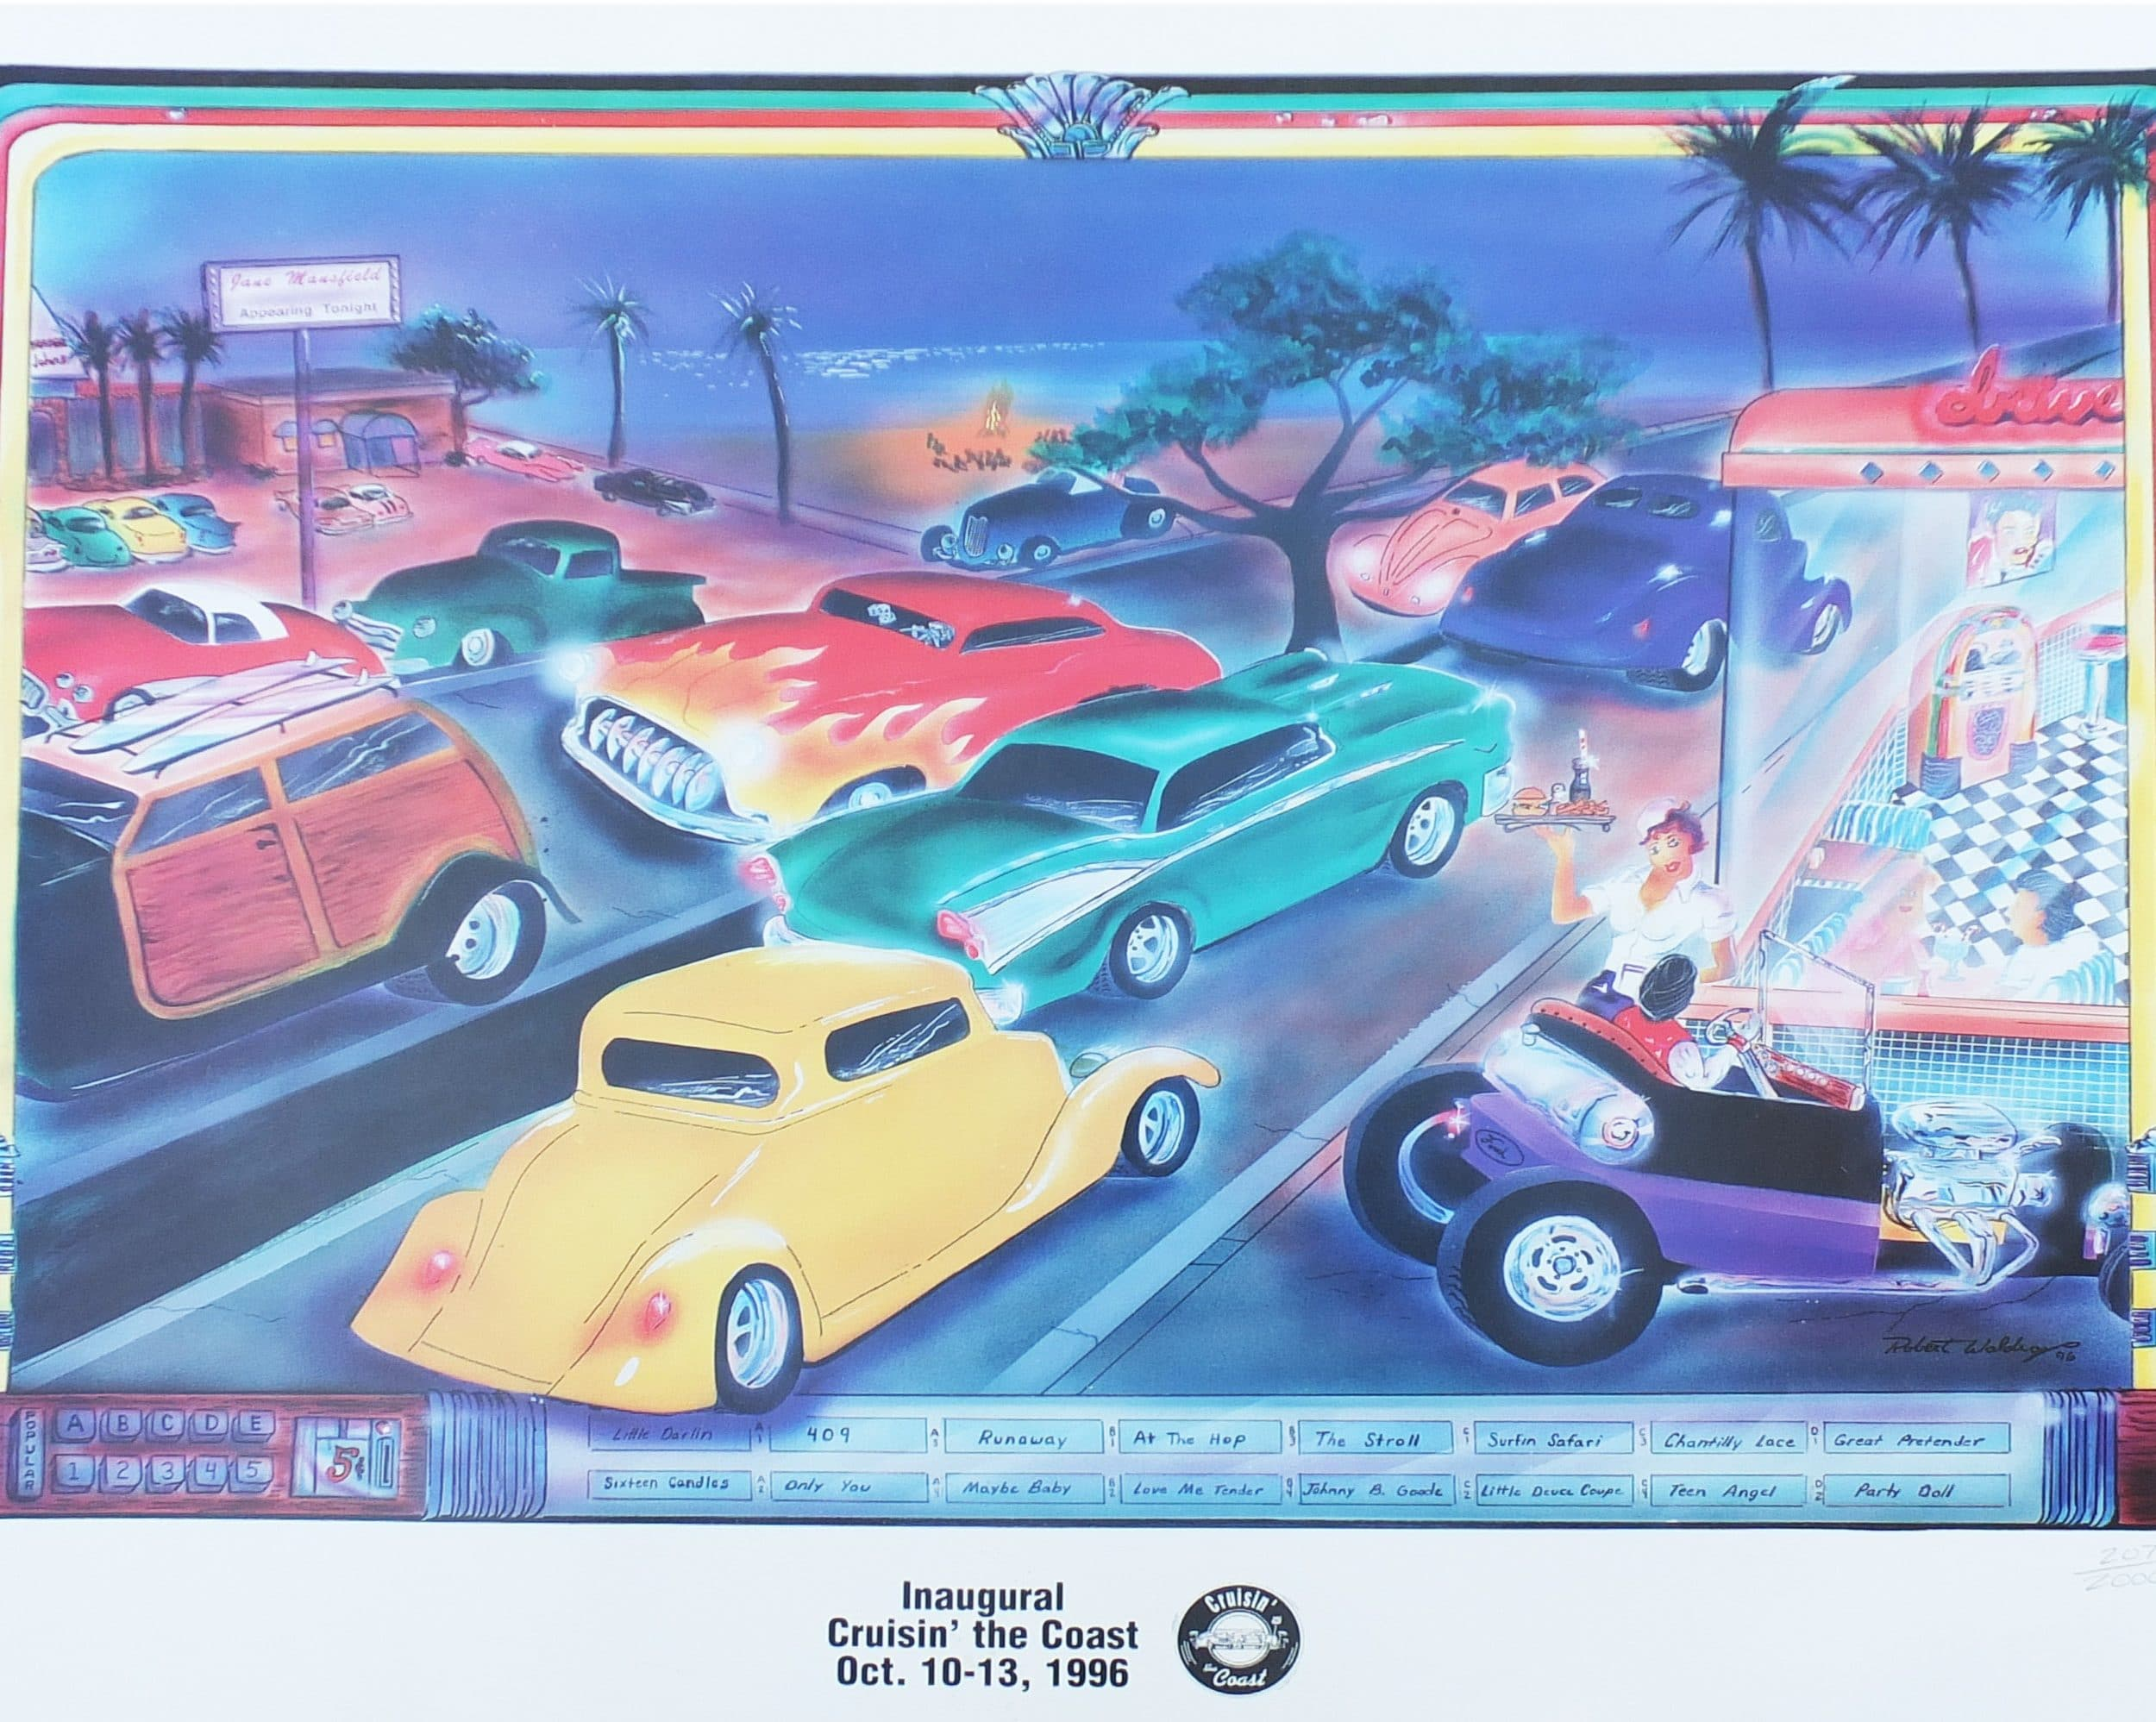 Cruisin' the Coast Poster from 1996 - OurMShome